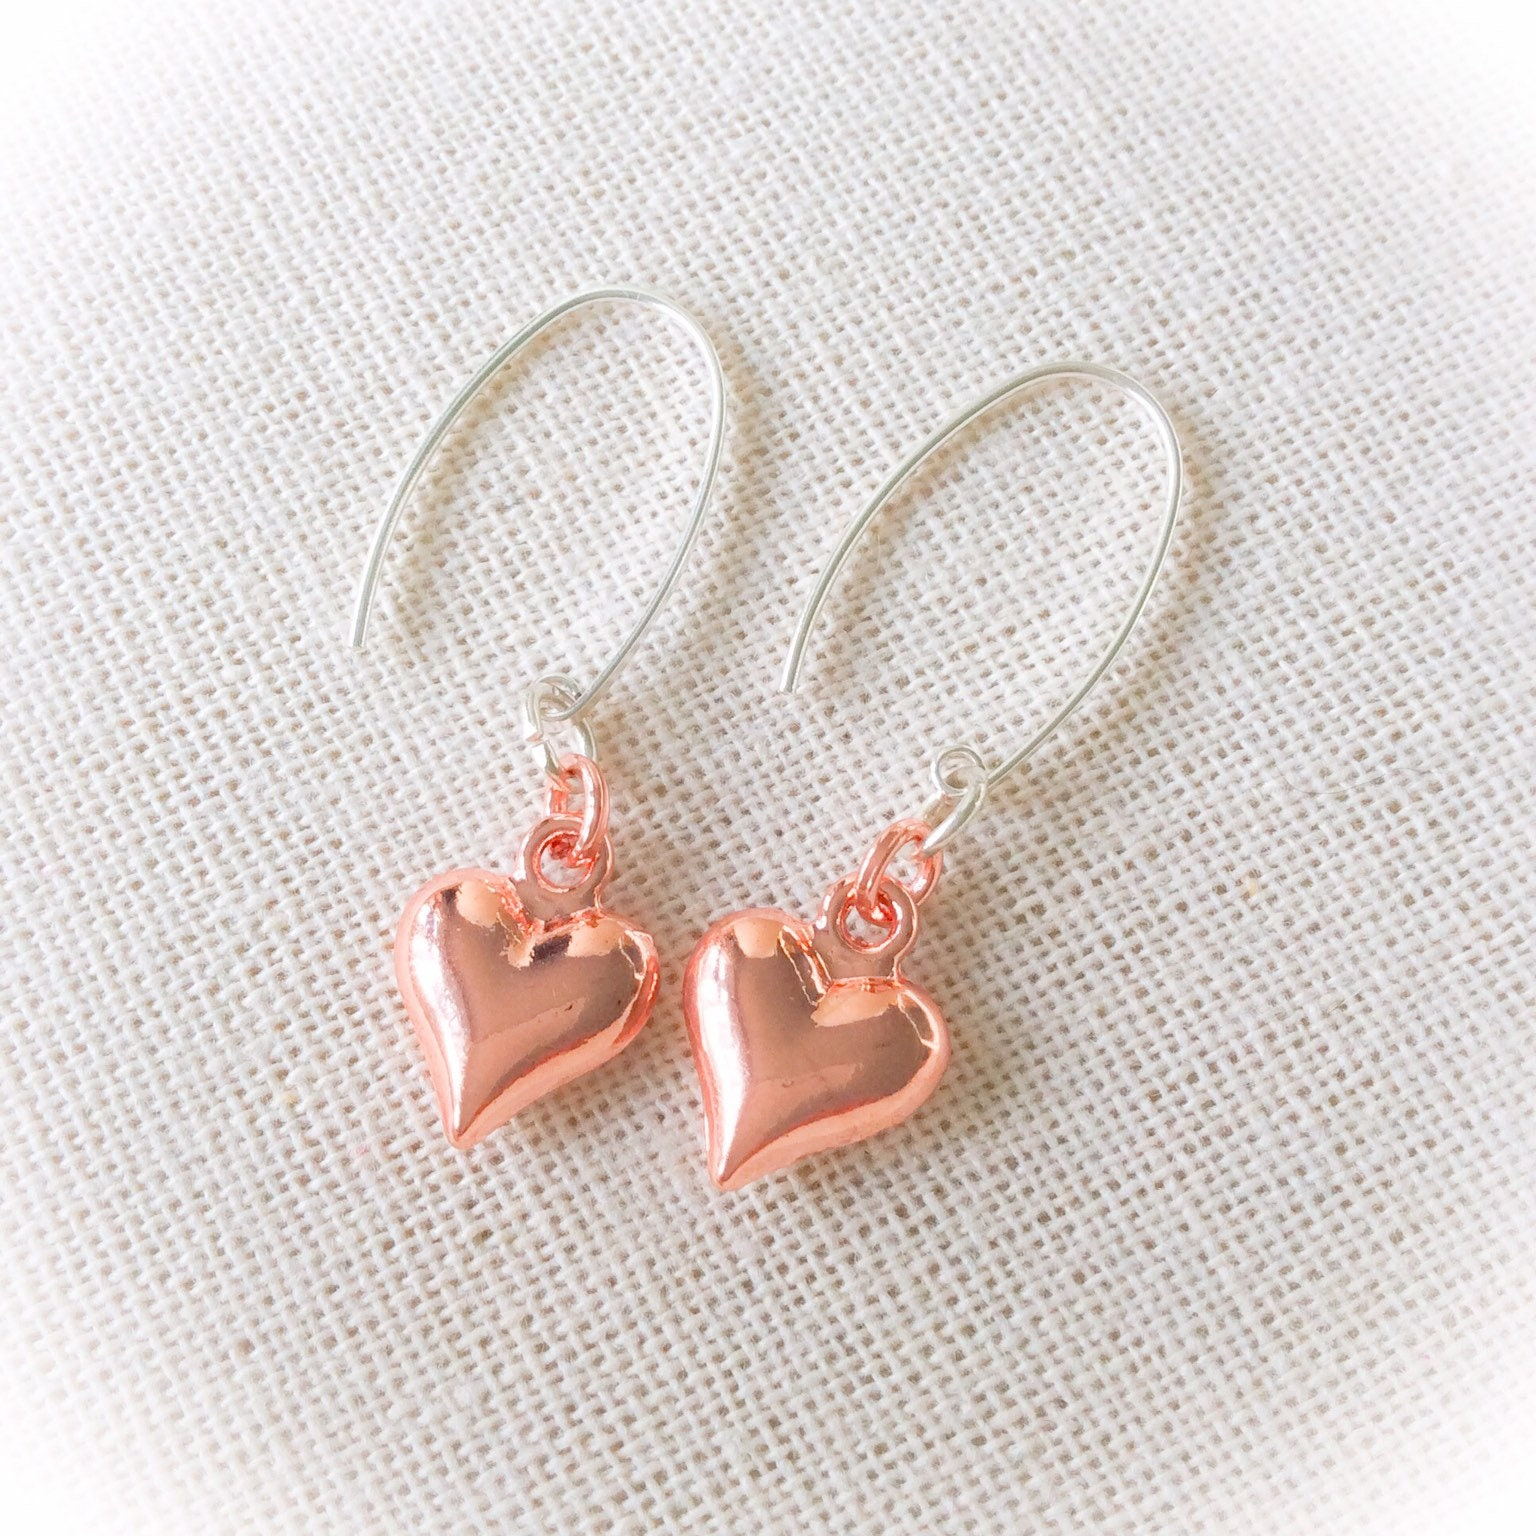 Earrings Rose Gold Heart Romantic